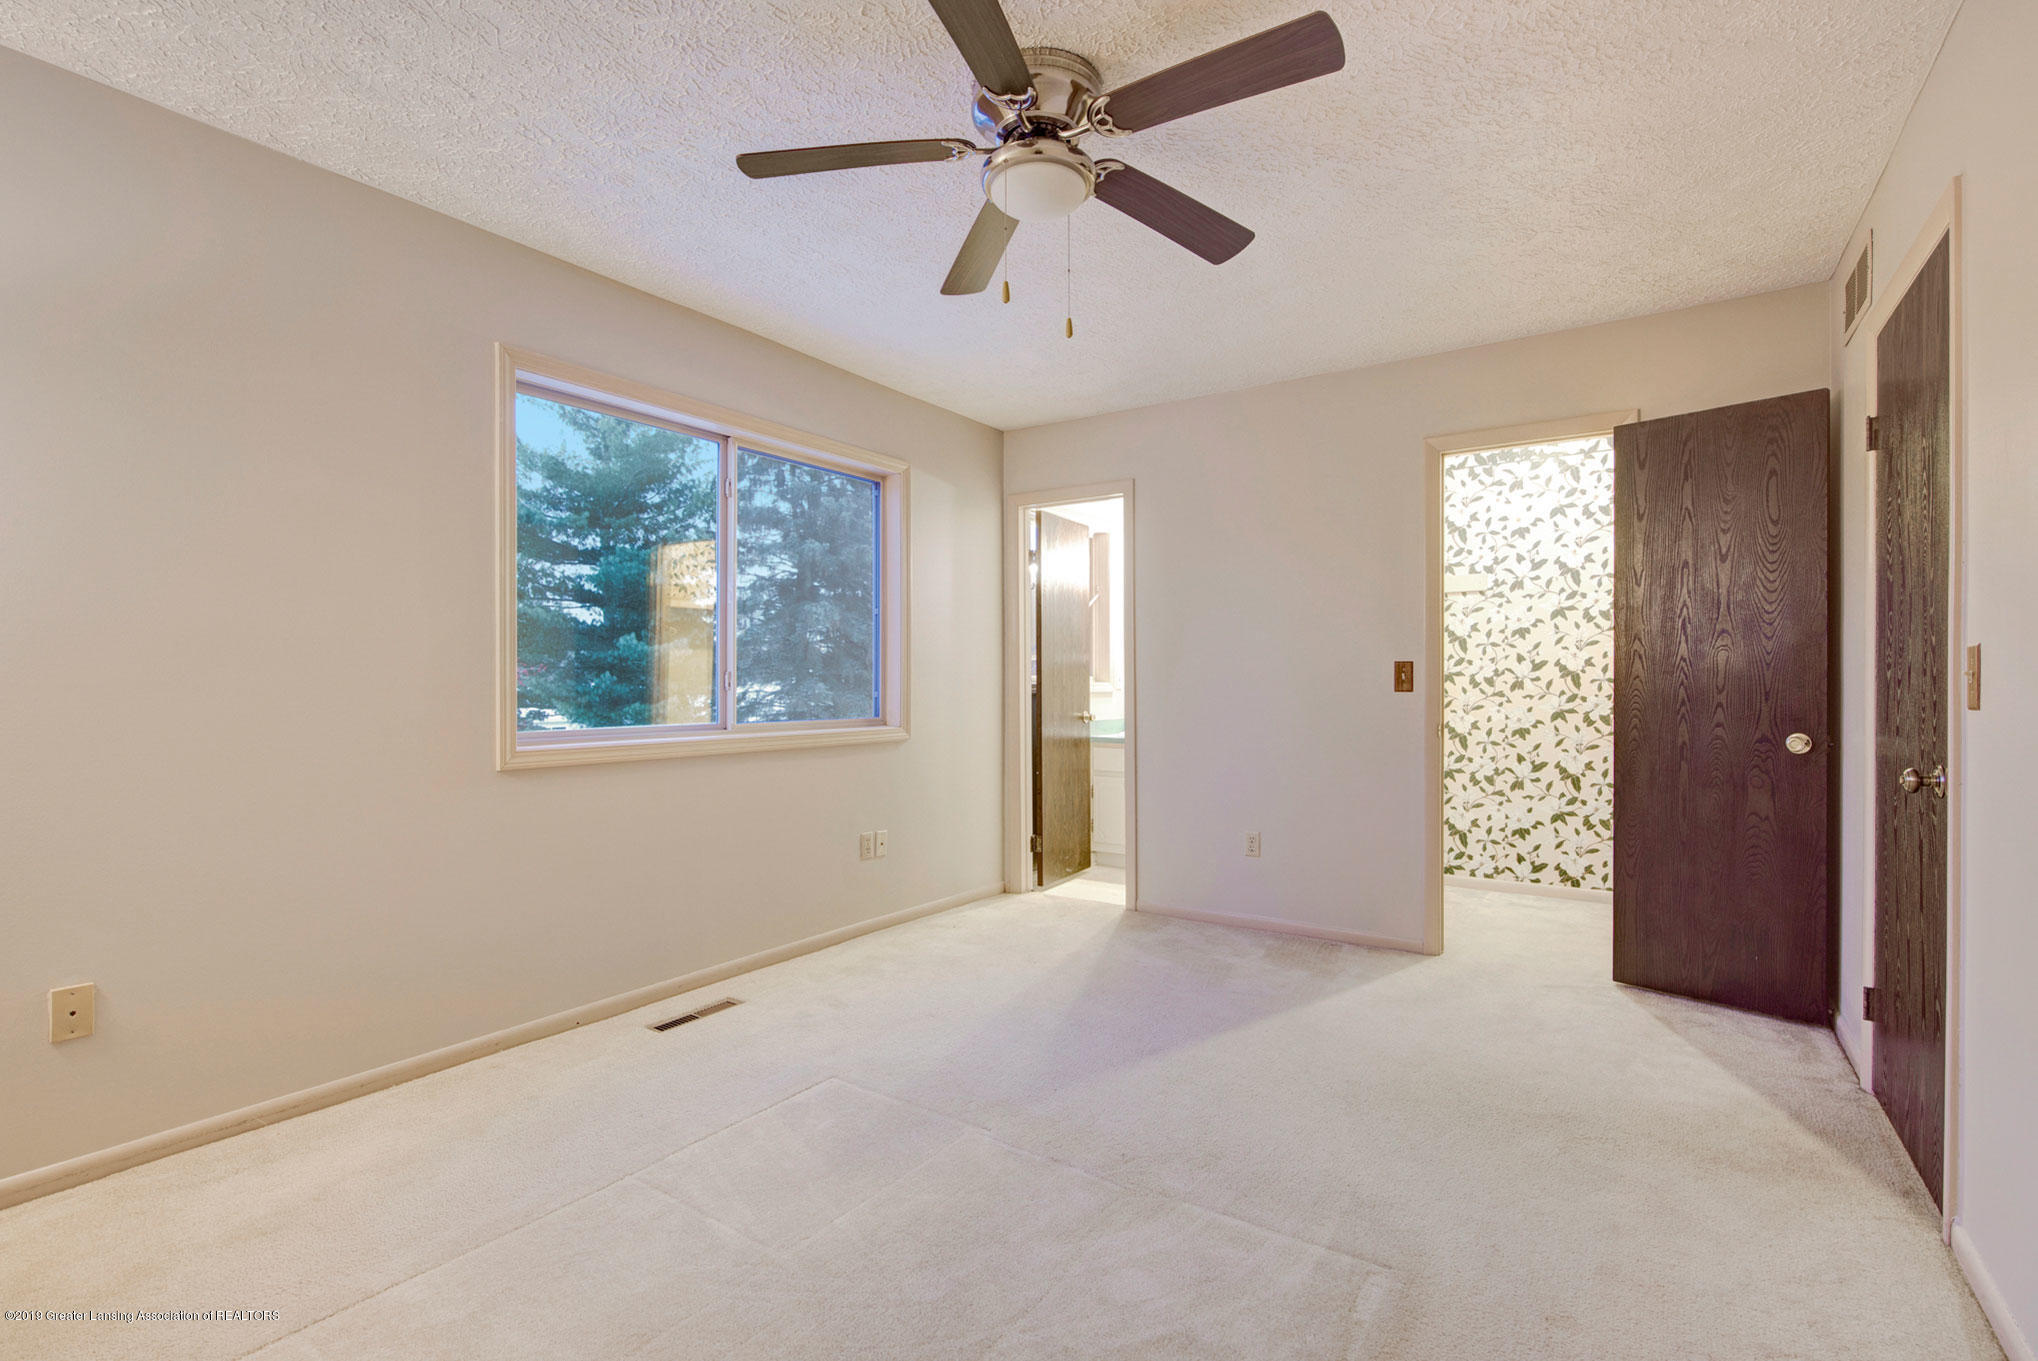 4666 Crampton Way - Bedroom - 17